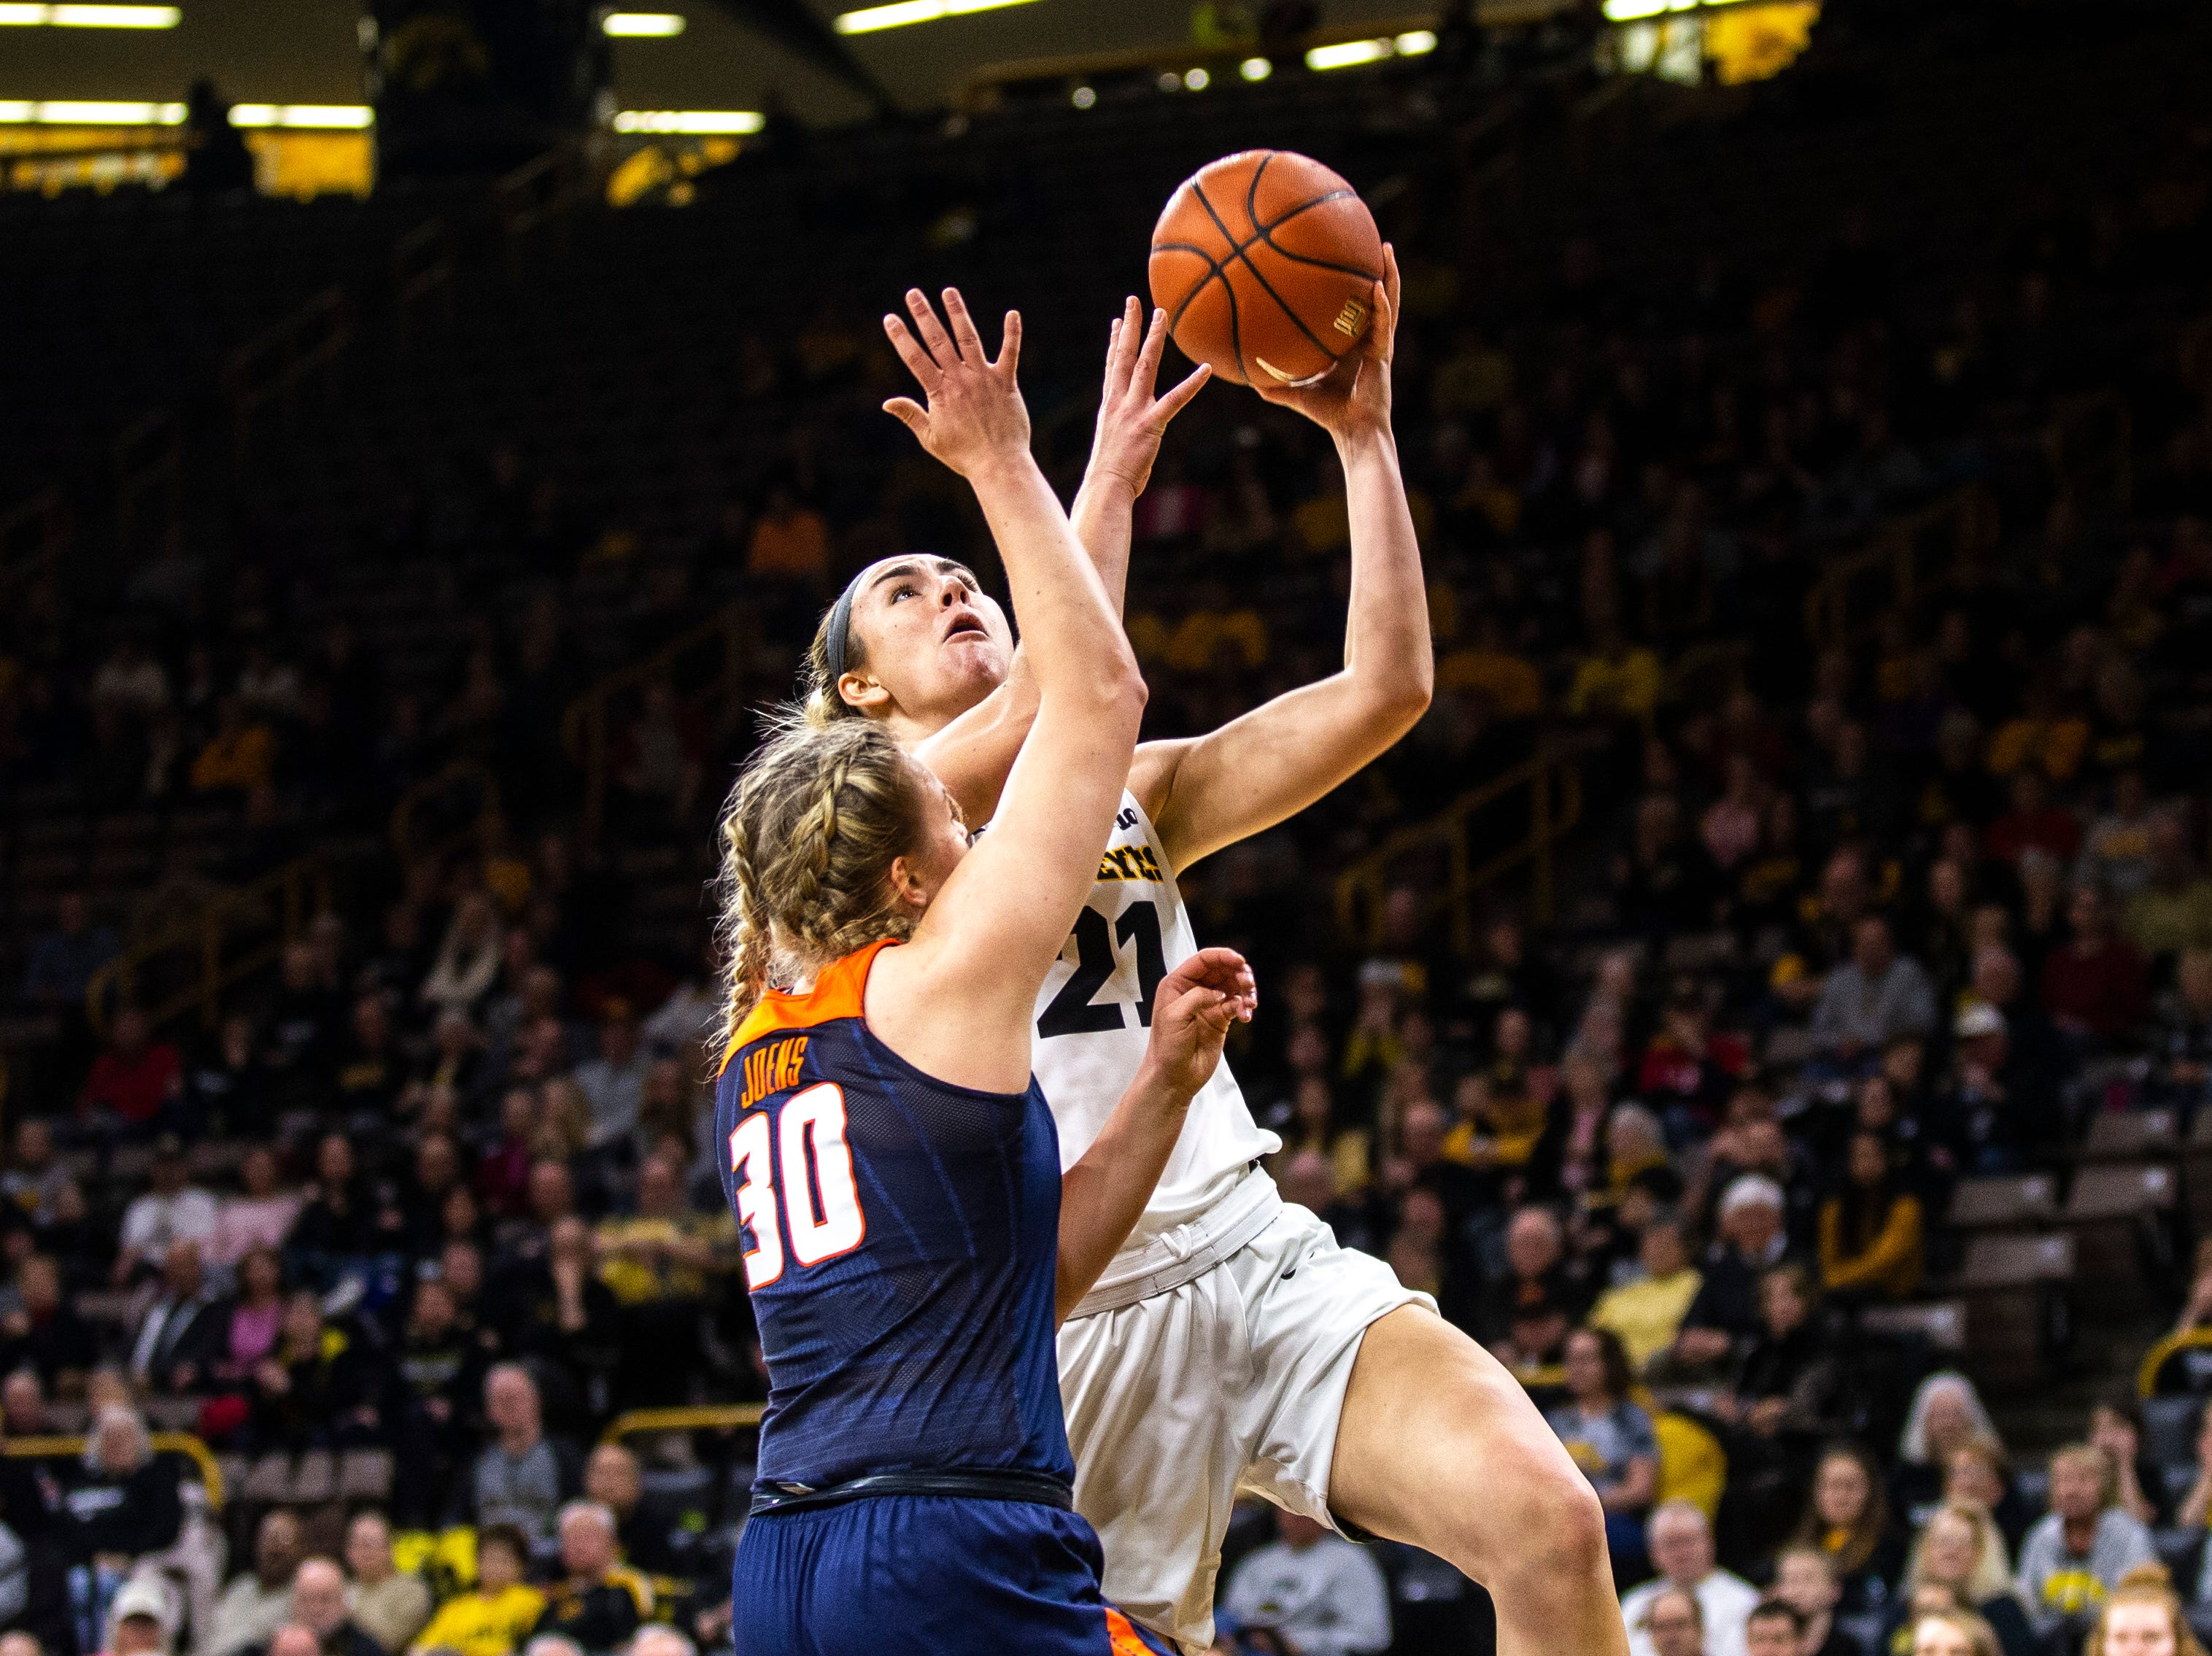 Iowa forward Hannah Stewart (21) drives to the basket while Illinois guard Courtney Joens (30) defends during a NCAA Big Ten Conference women's basketball game on Thursday, Feb. 14, 2019 at Carver-Hawkeye Arena in Iowa City, Iowa.